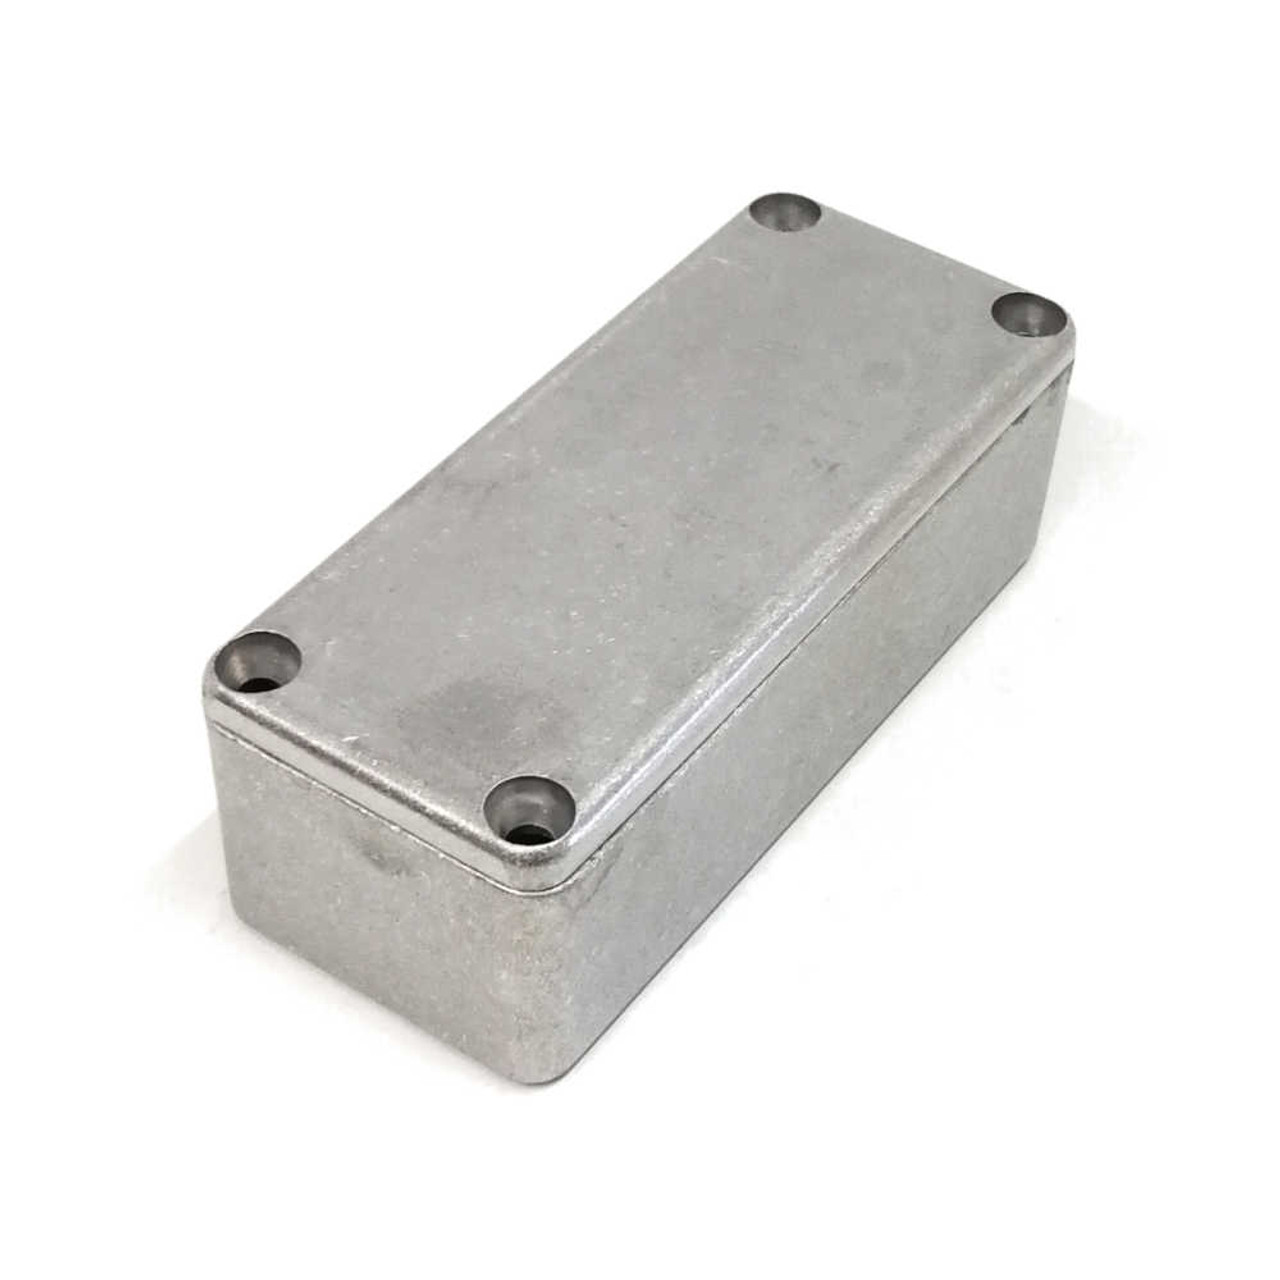 Generic 1590A - Small Pedal Enclosure